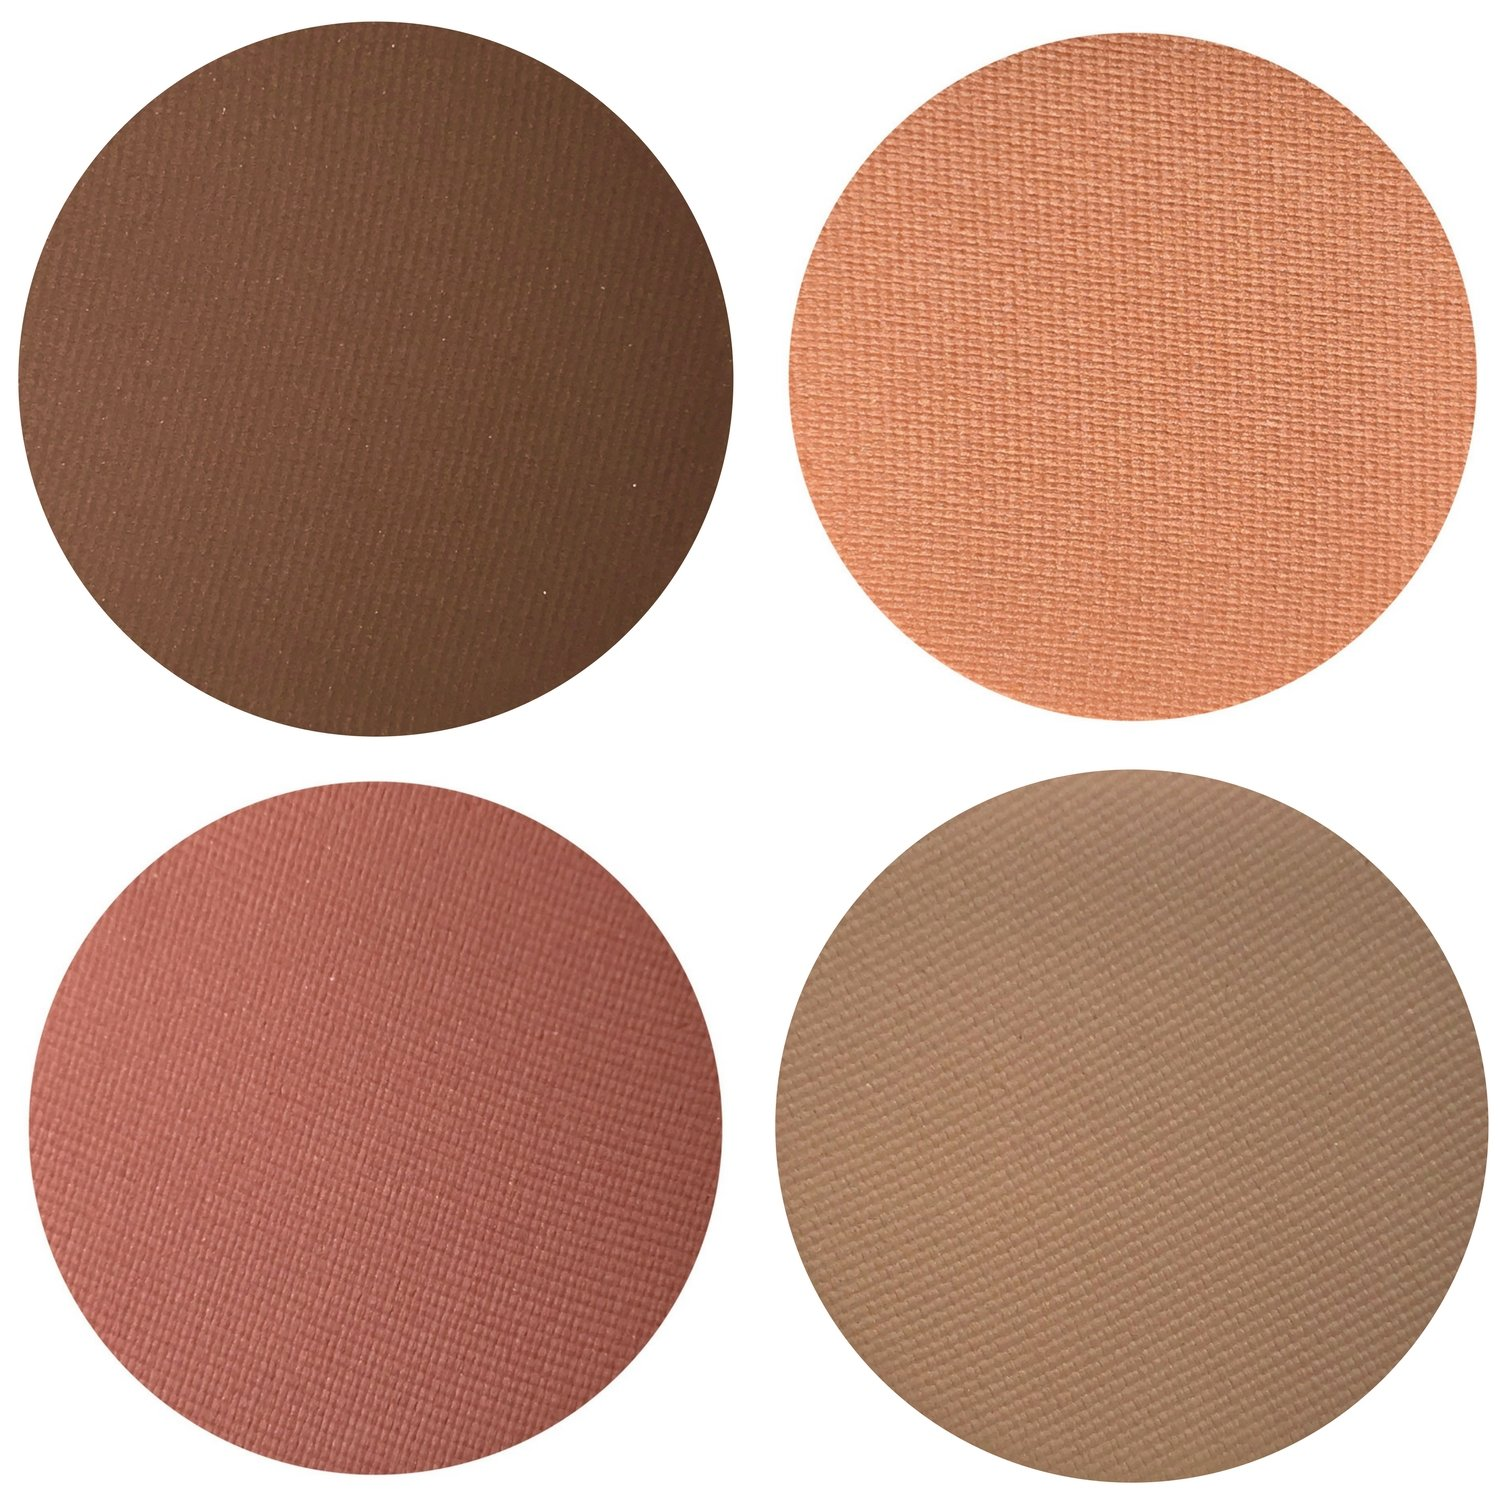 Peachy Perfection Eyeshadow Quad Palette - 4 Highly Pigmented Single Powder Eye Shadow Pans, Magnetic Refill 26mm, Professional Quality Makeup, Paraben Gluten Free, Cruelty Free Cosmetics